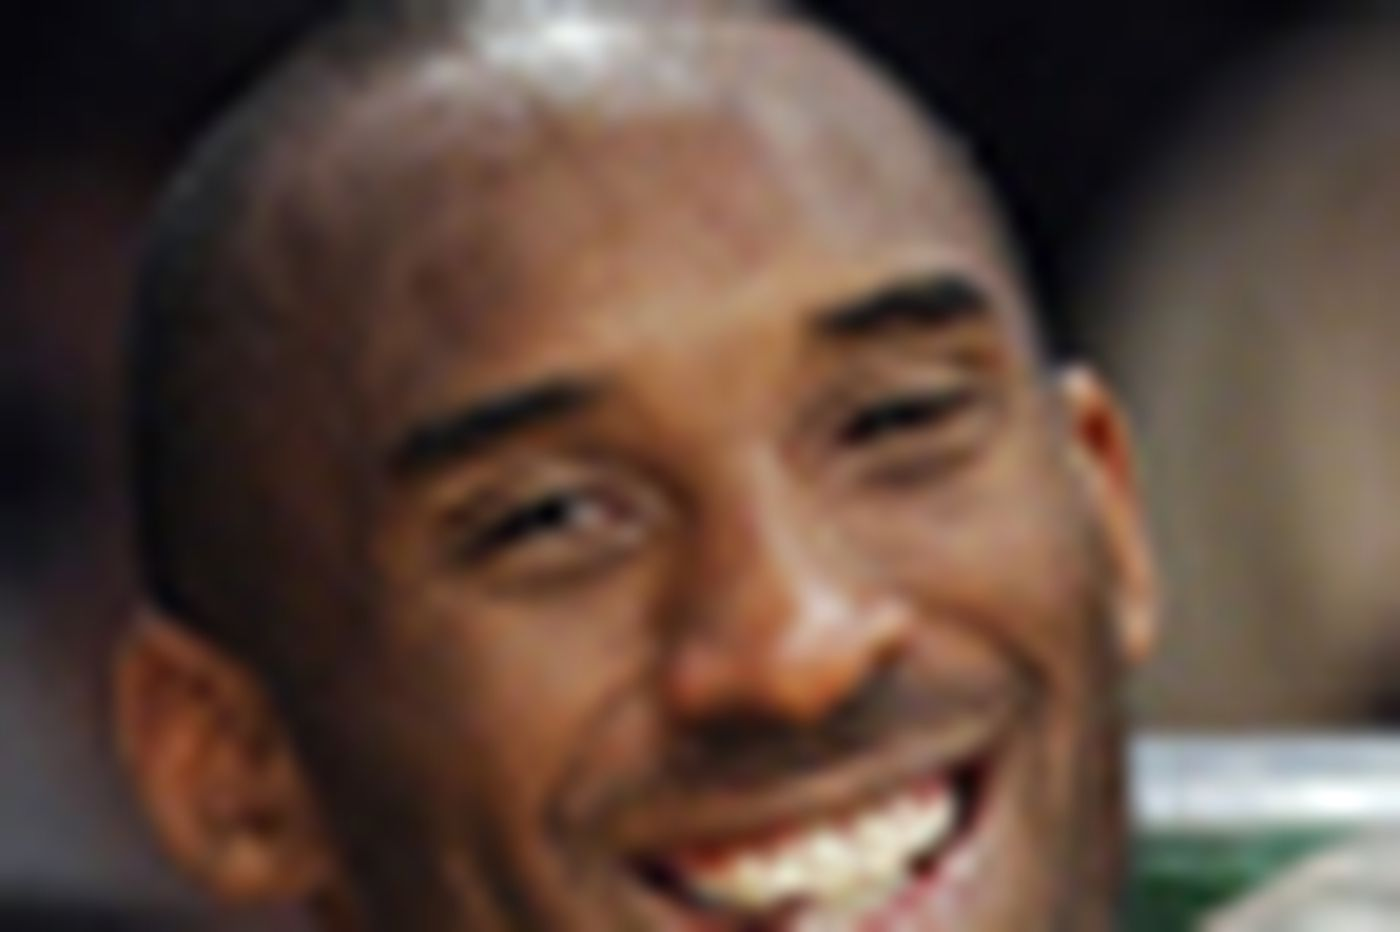 Kobe's event in Lower Merion nearly sold out